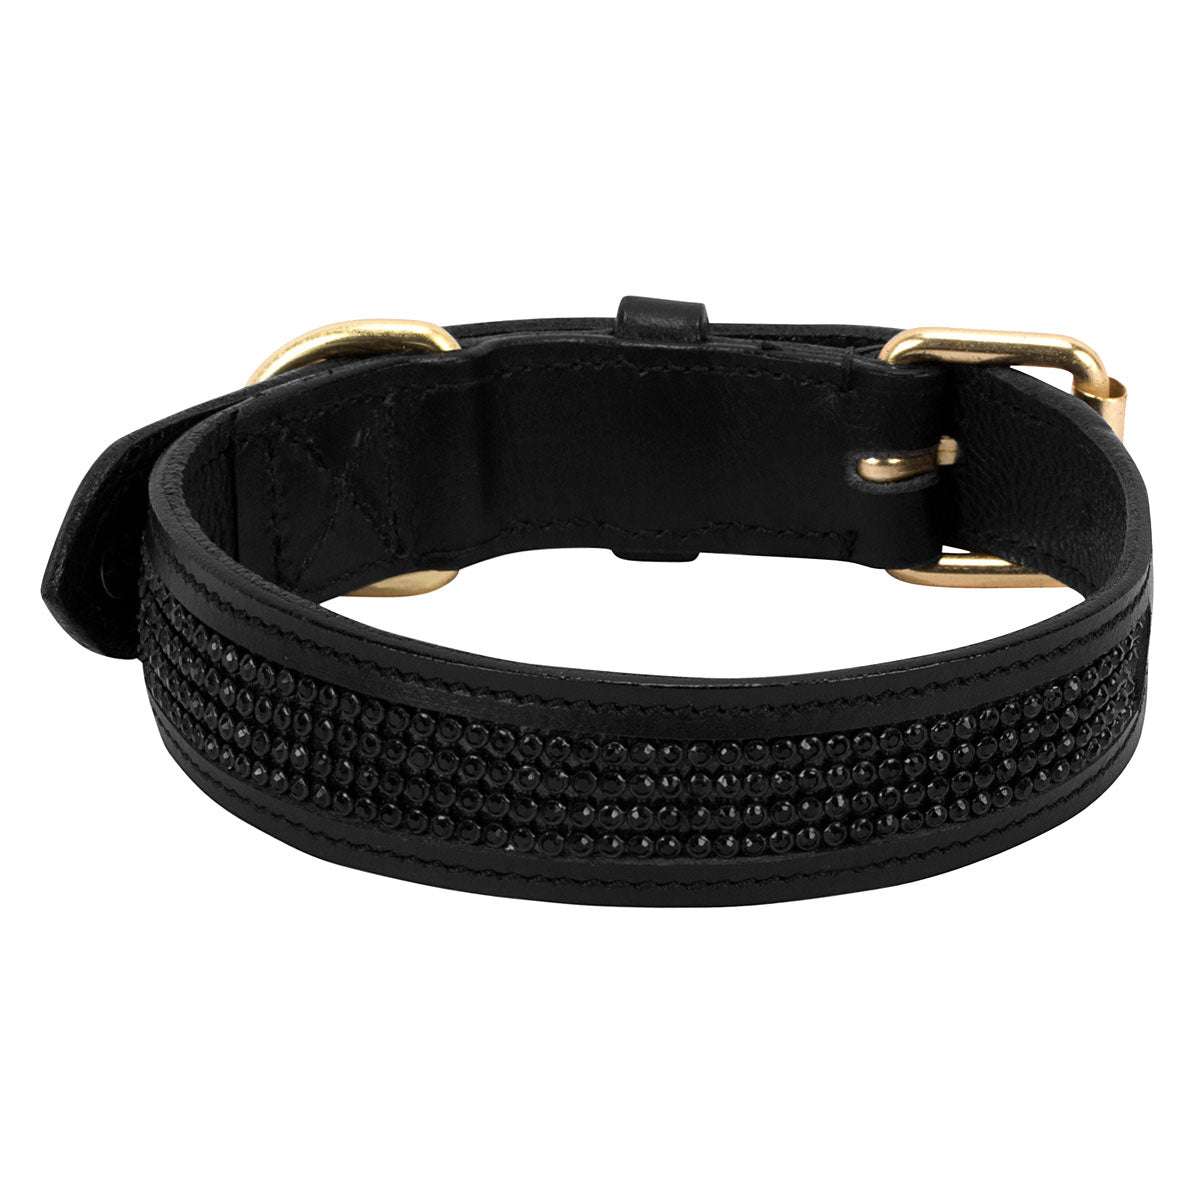 Halo Bling 4 Row Dog Collar_2122